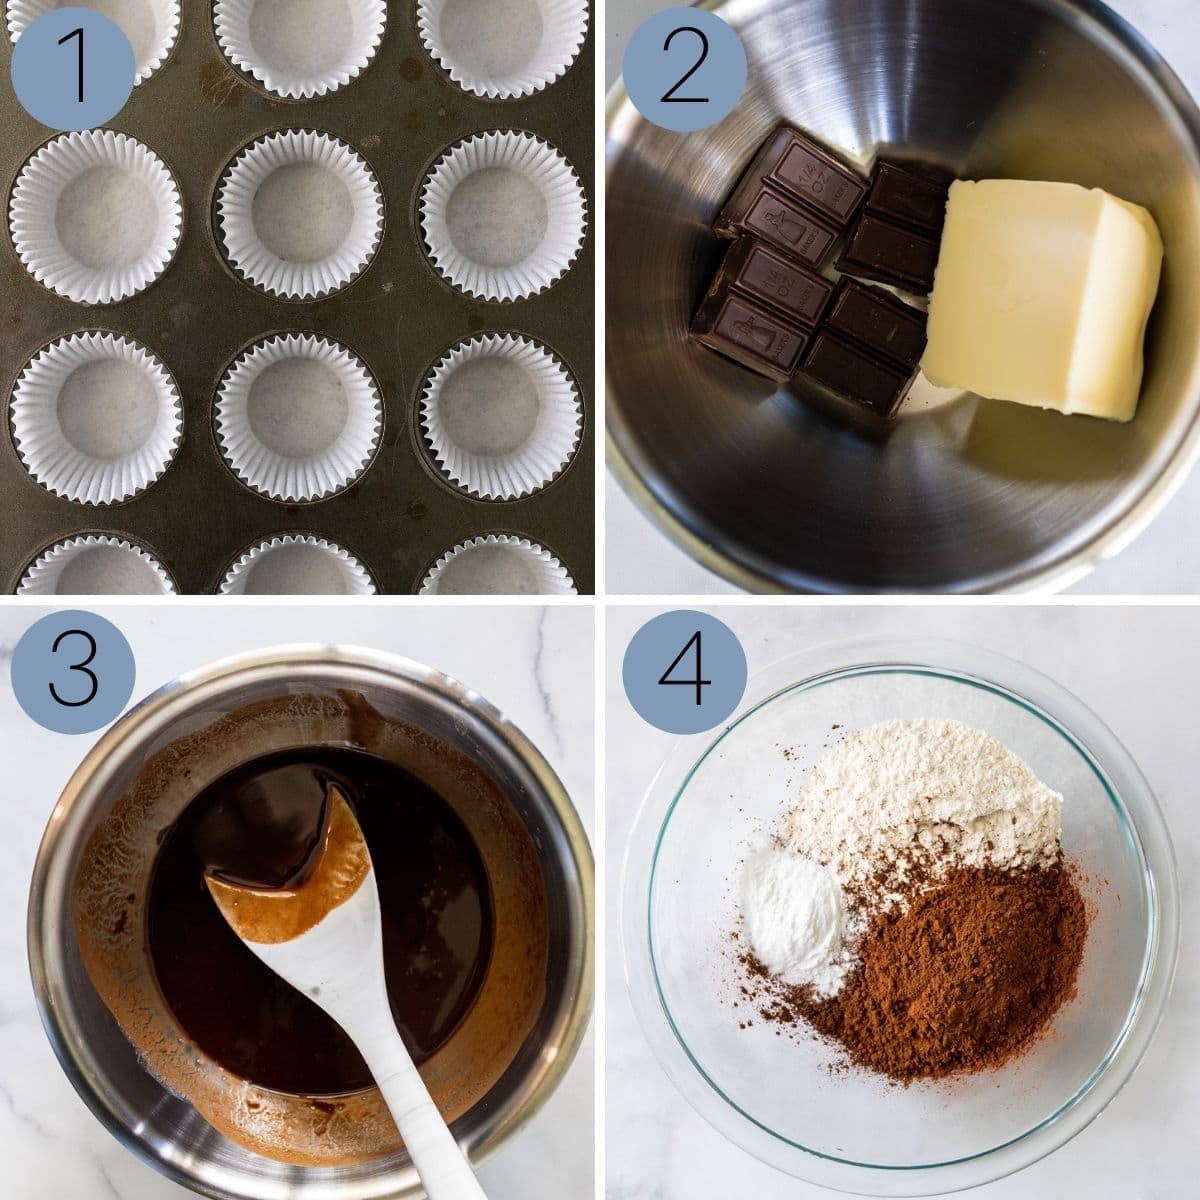 first step in making the chocolate cupcakes